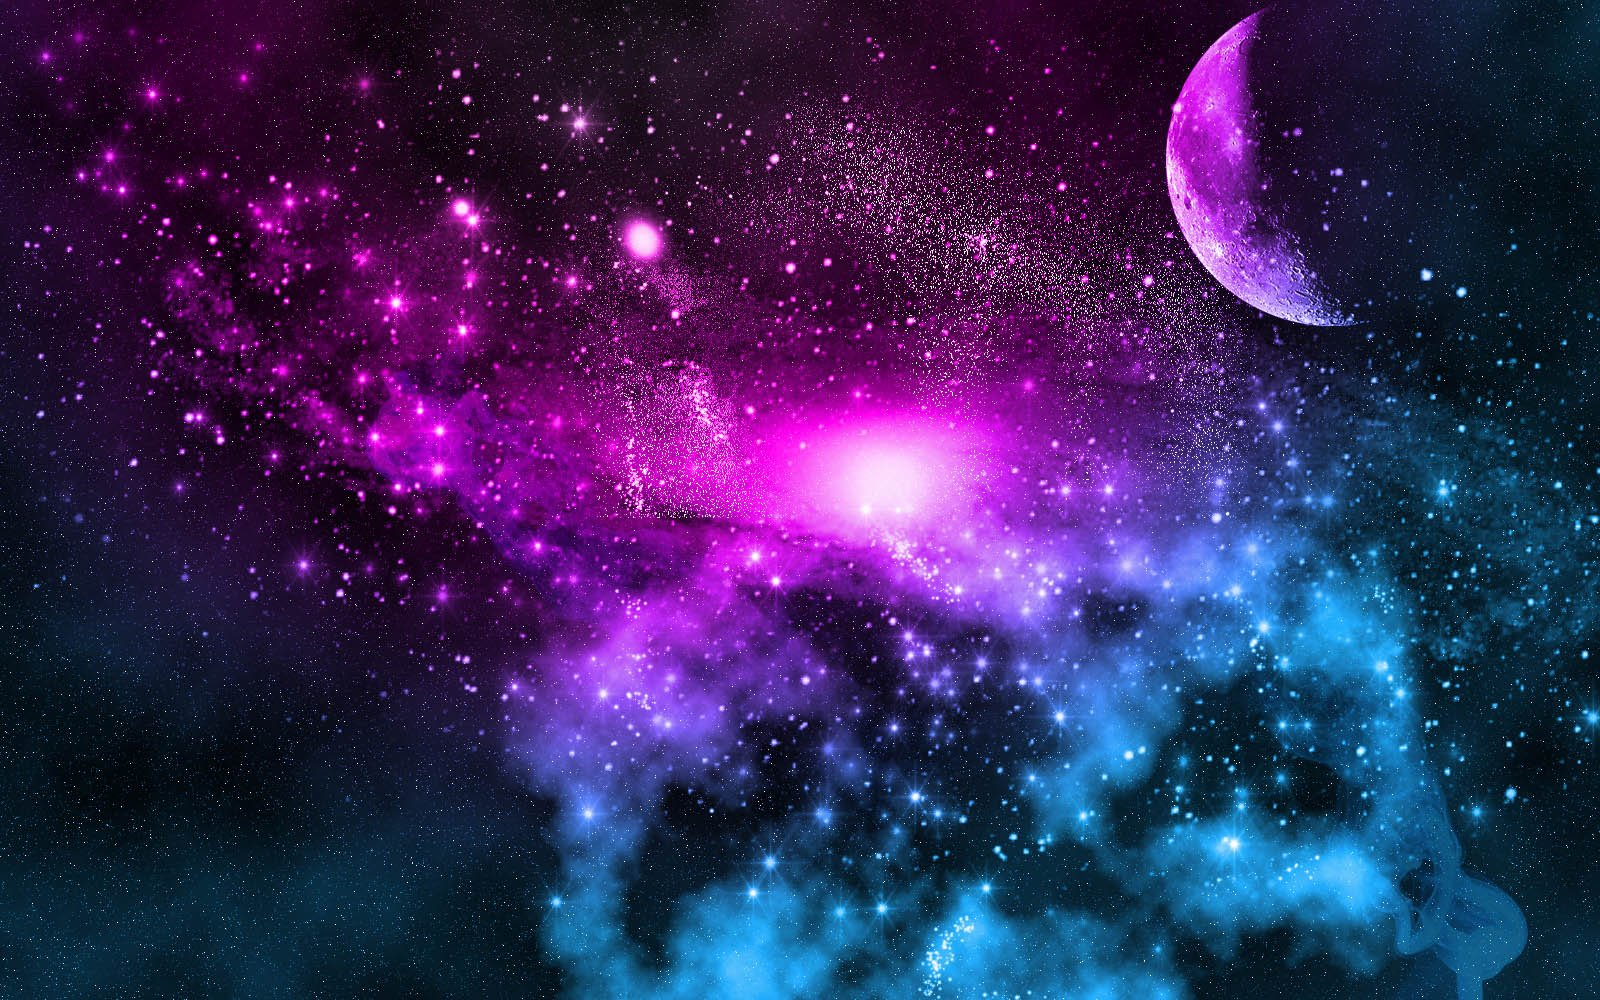 Colorful Galaxy Wallpaper - WallpaperSafari